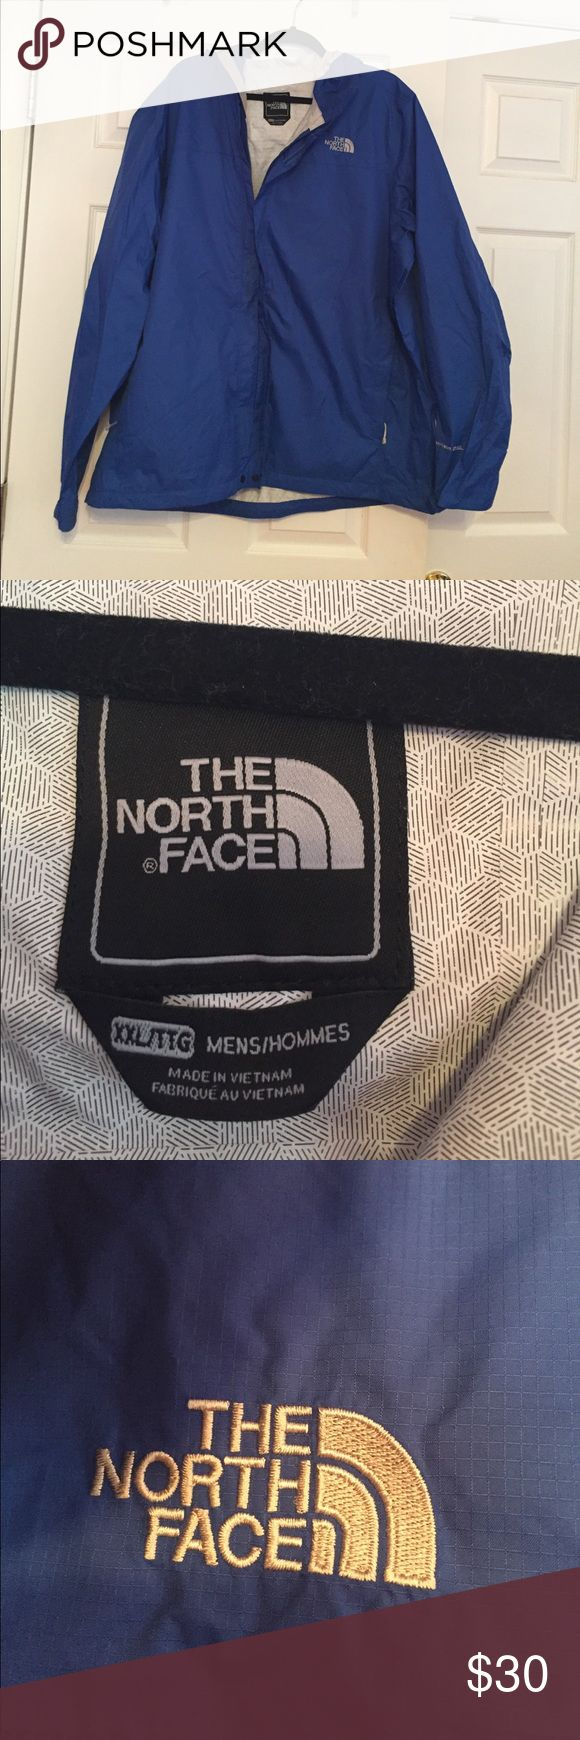 *NEW* North Face rain jacket Tags taken off but never worn, brand new North Face men's rain jacket with hood in perfect condition North Face Jackets & Coats